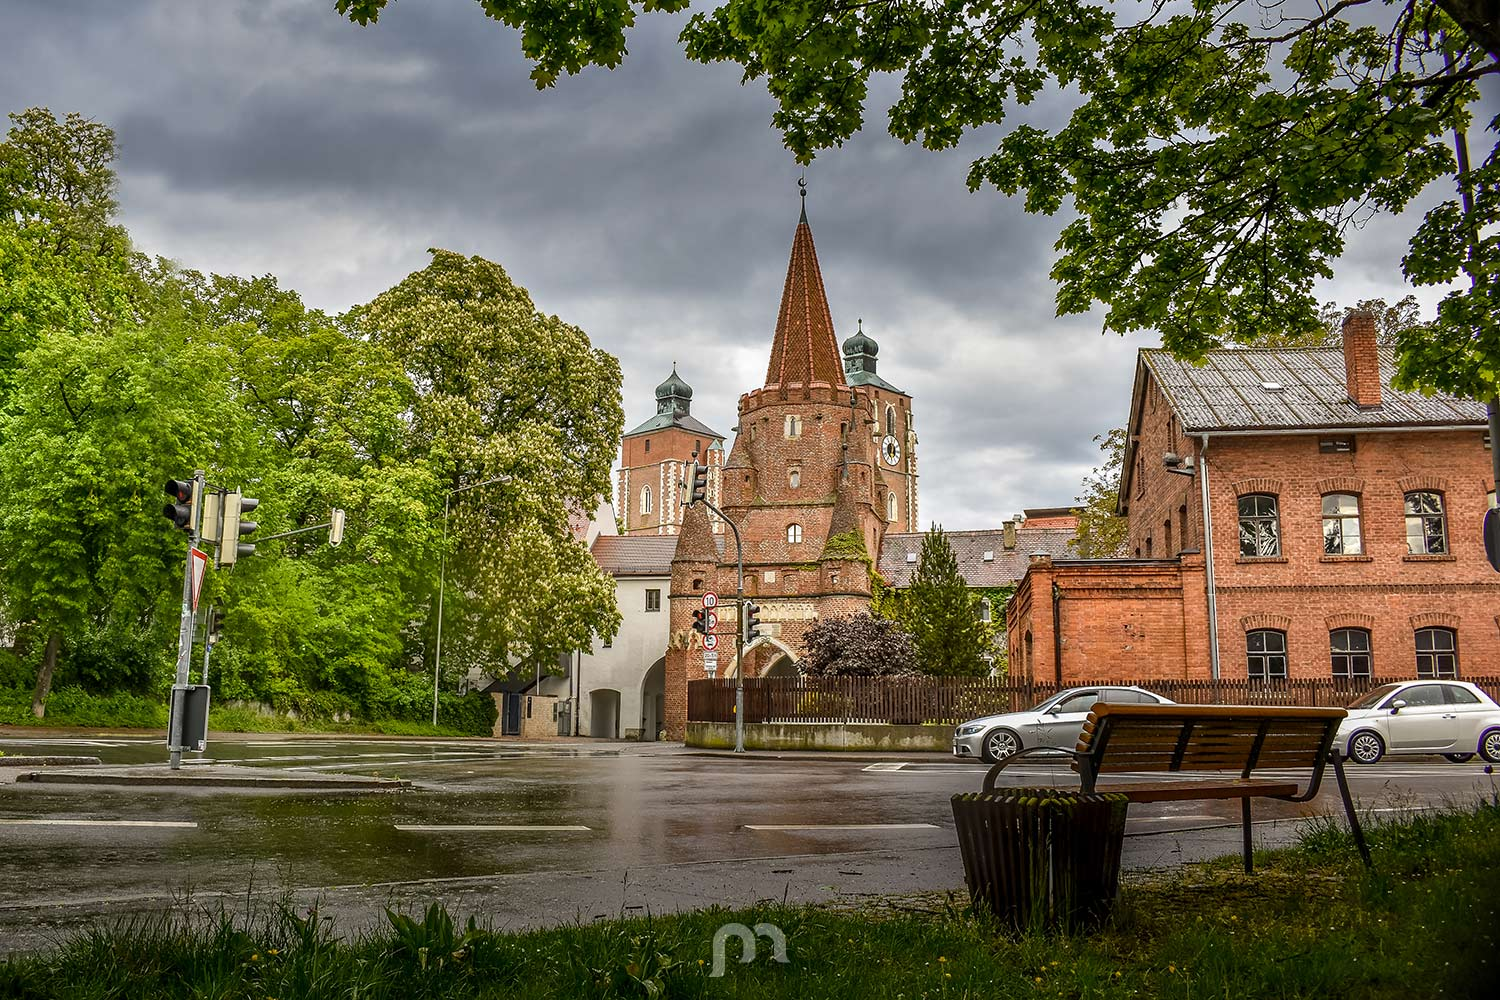 Kreuztor in rainy Ingolstadt, Germany